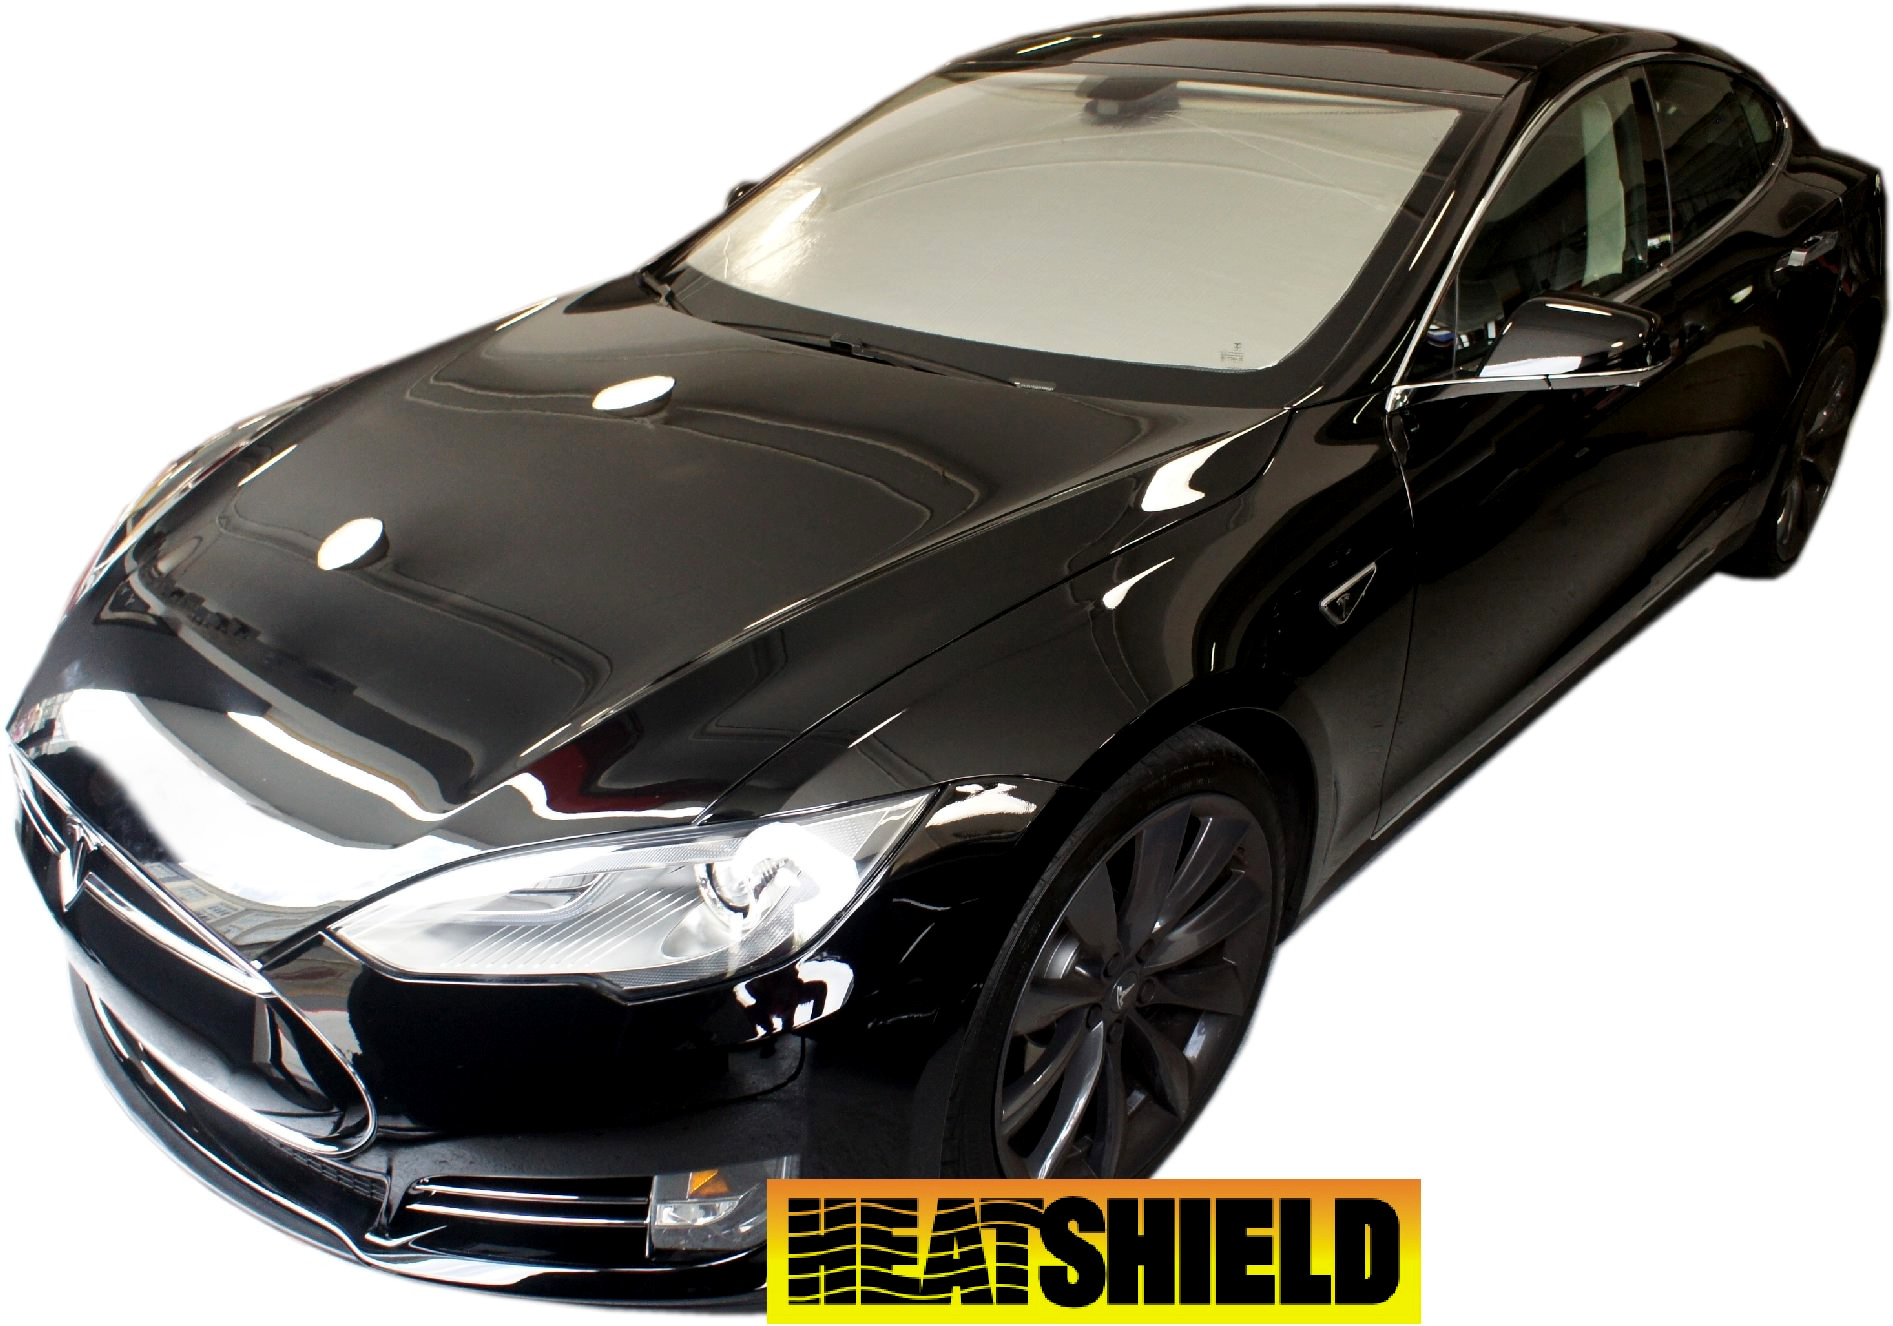 Model-S-Exterior-Heatshield-Sunshade